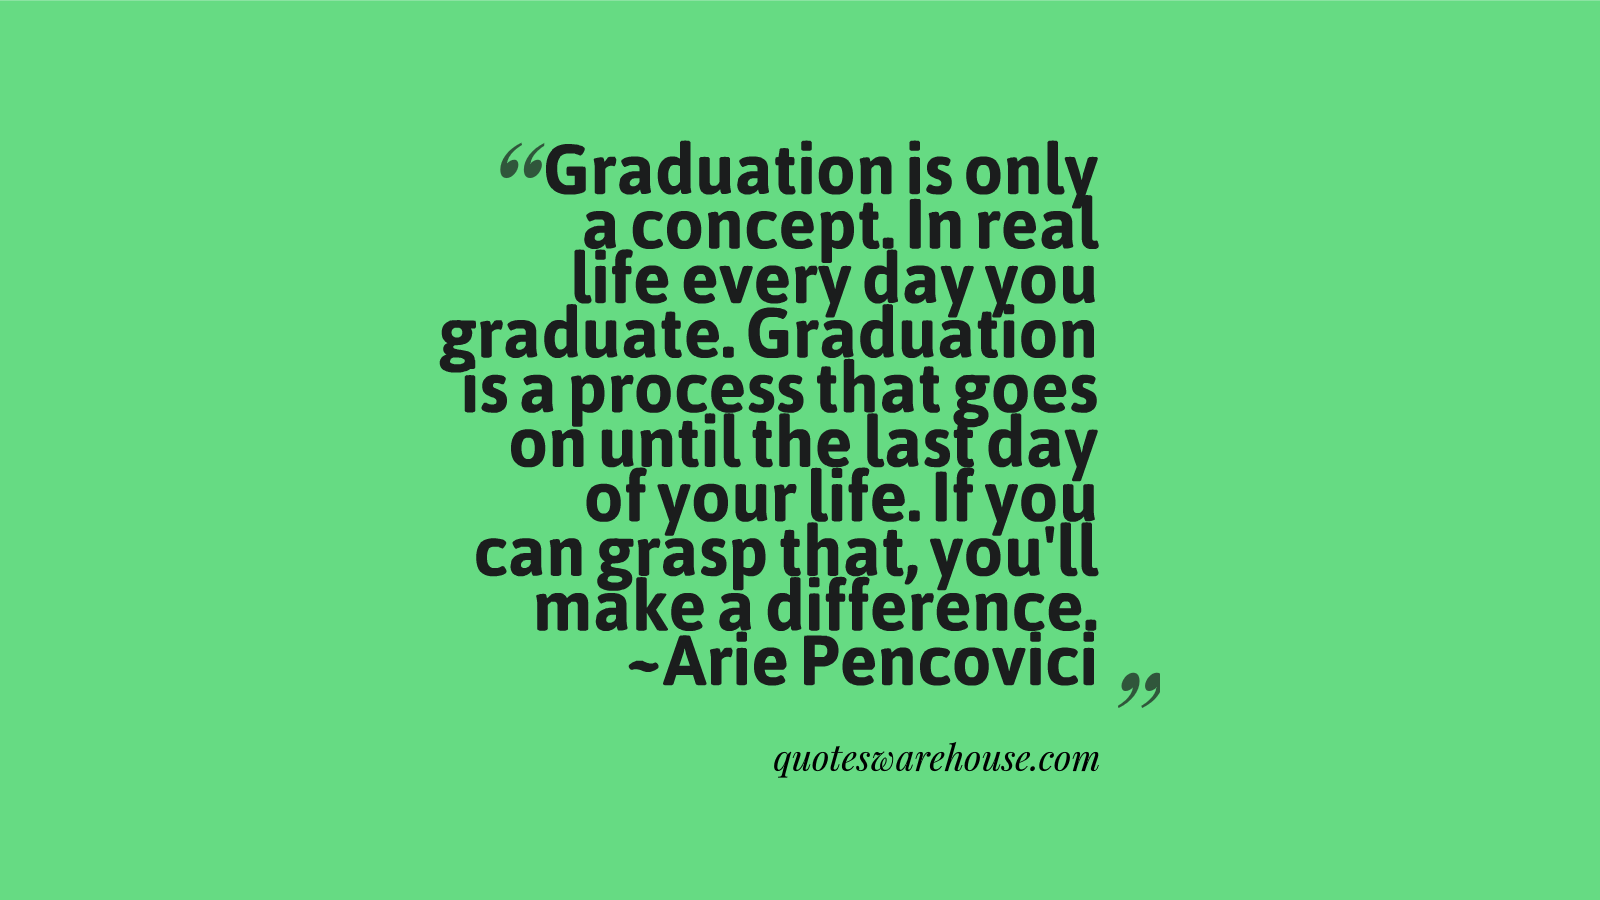 Graduation Quotes: Graduate School Quotes. QuotesGram